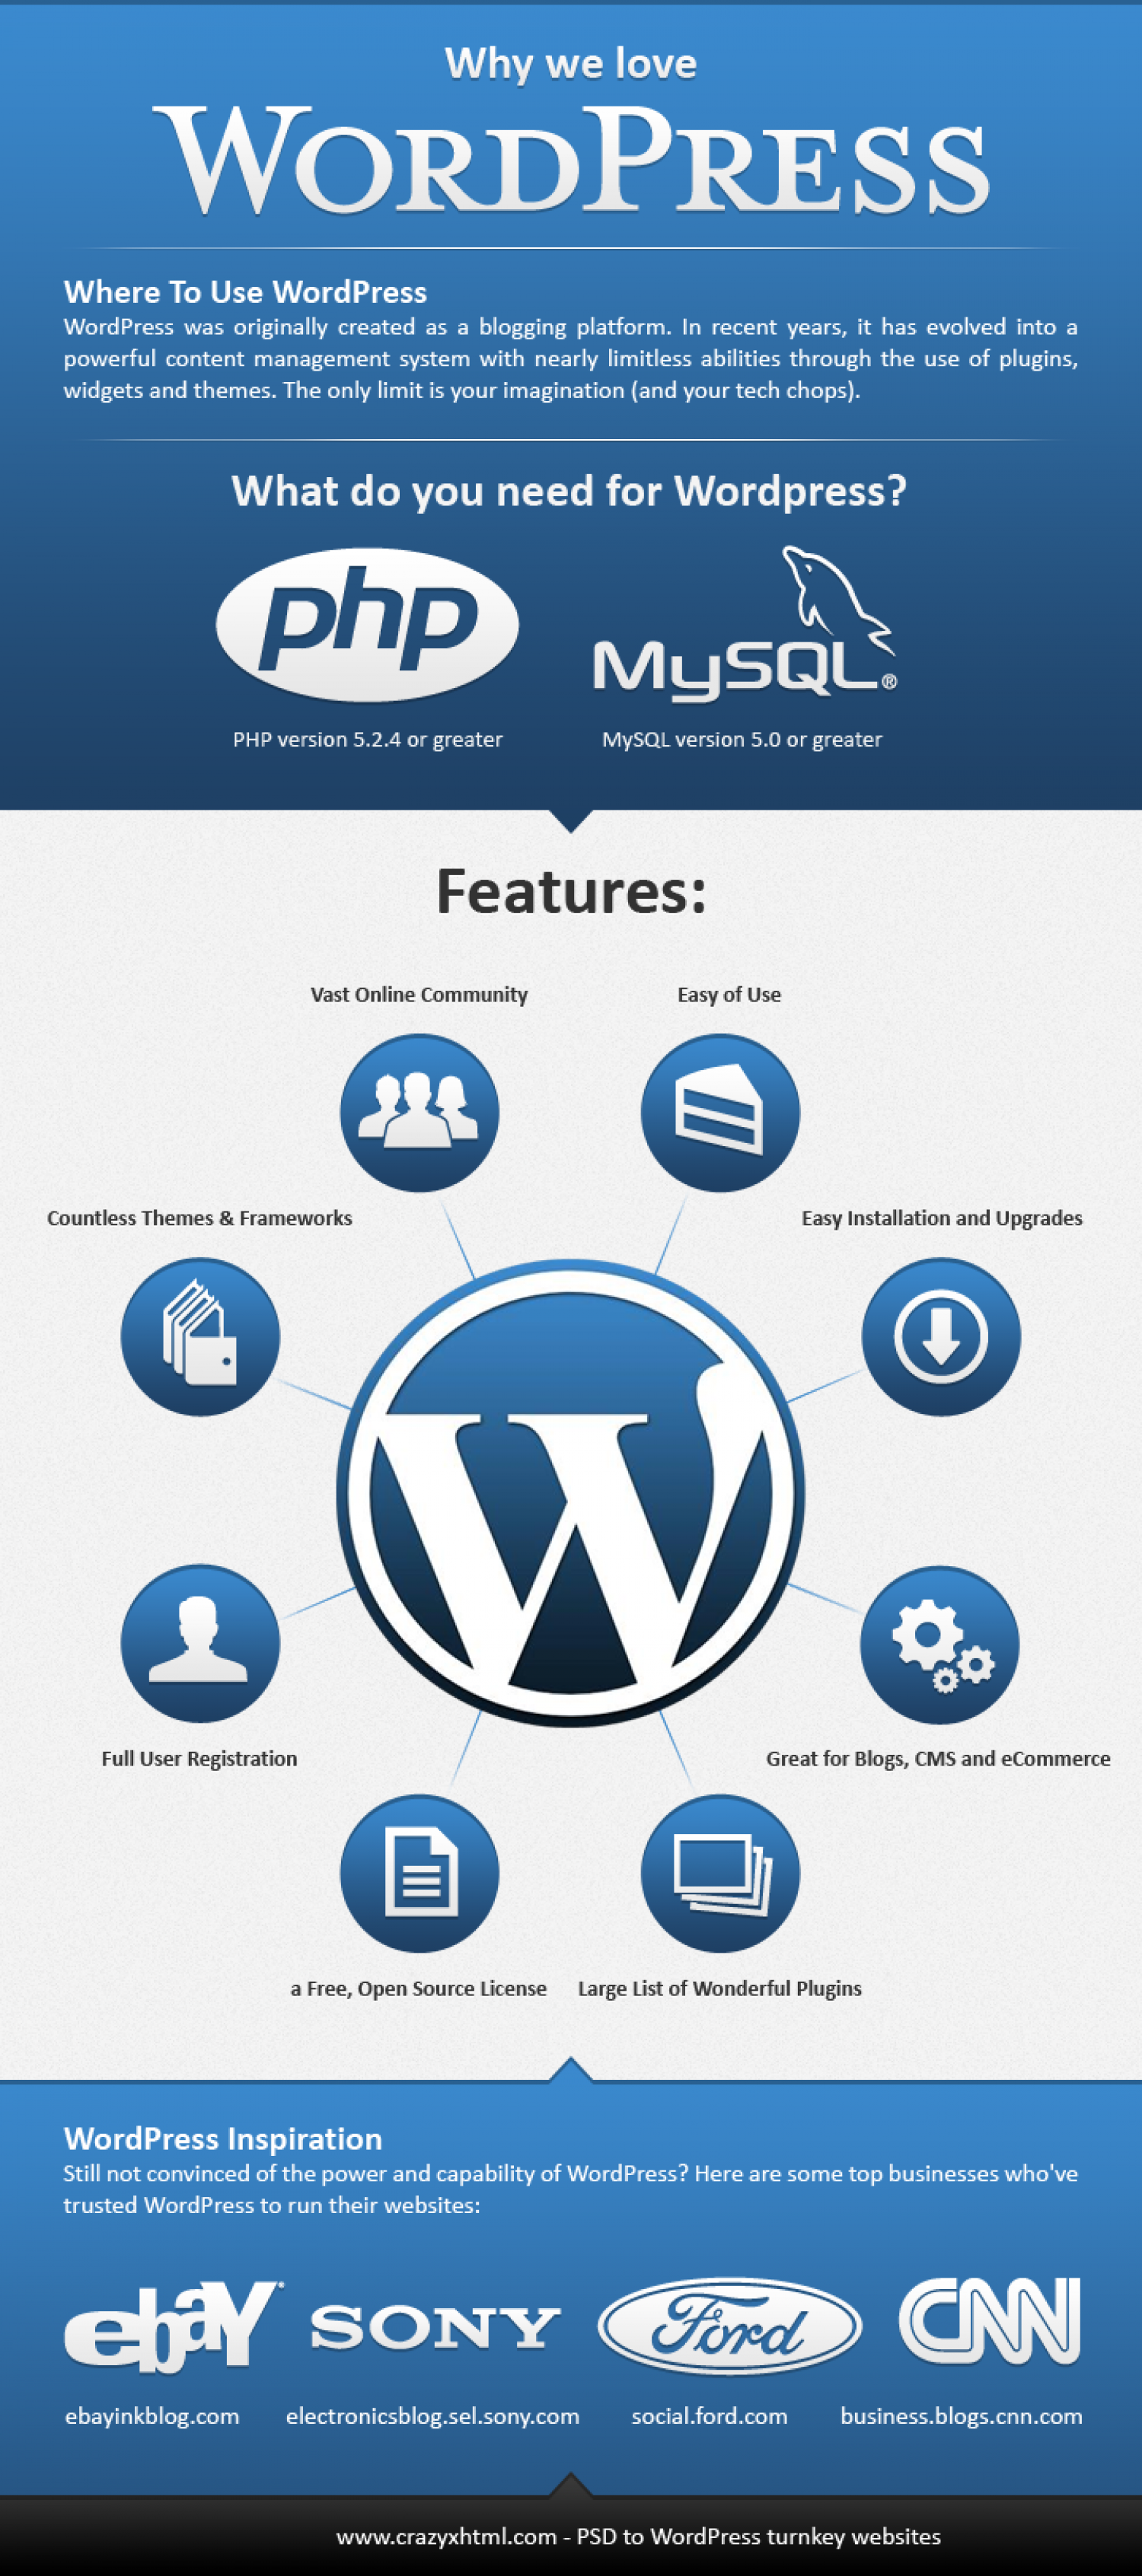 Why we love Wordpress Infographic